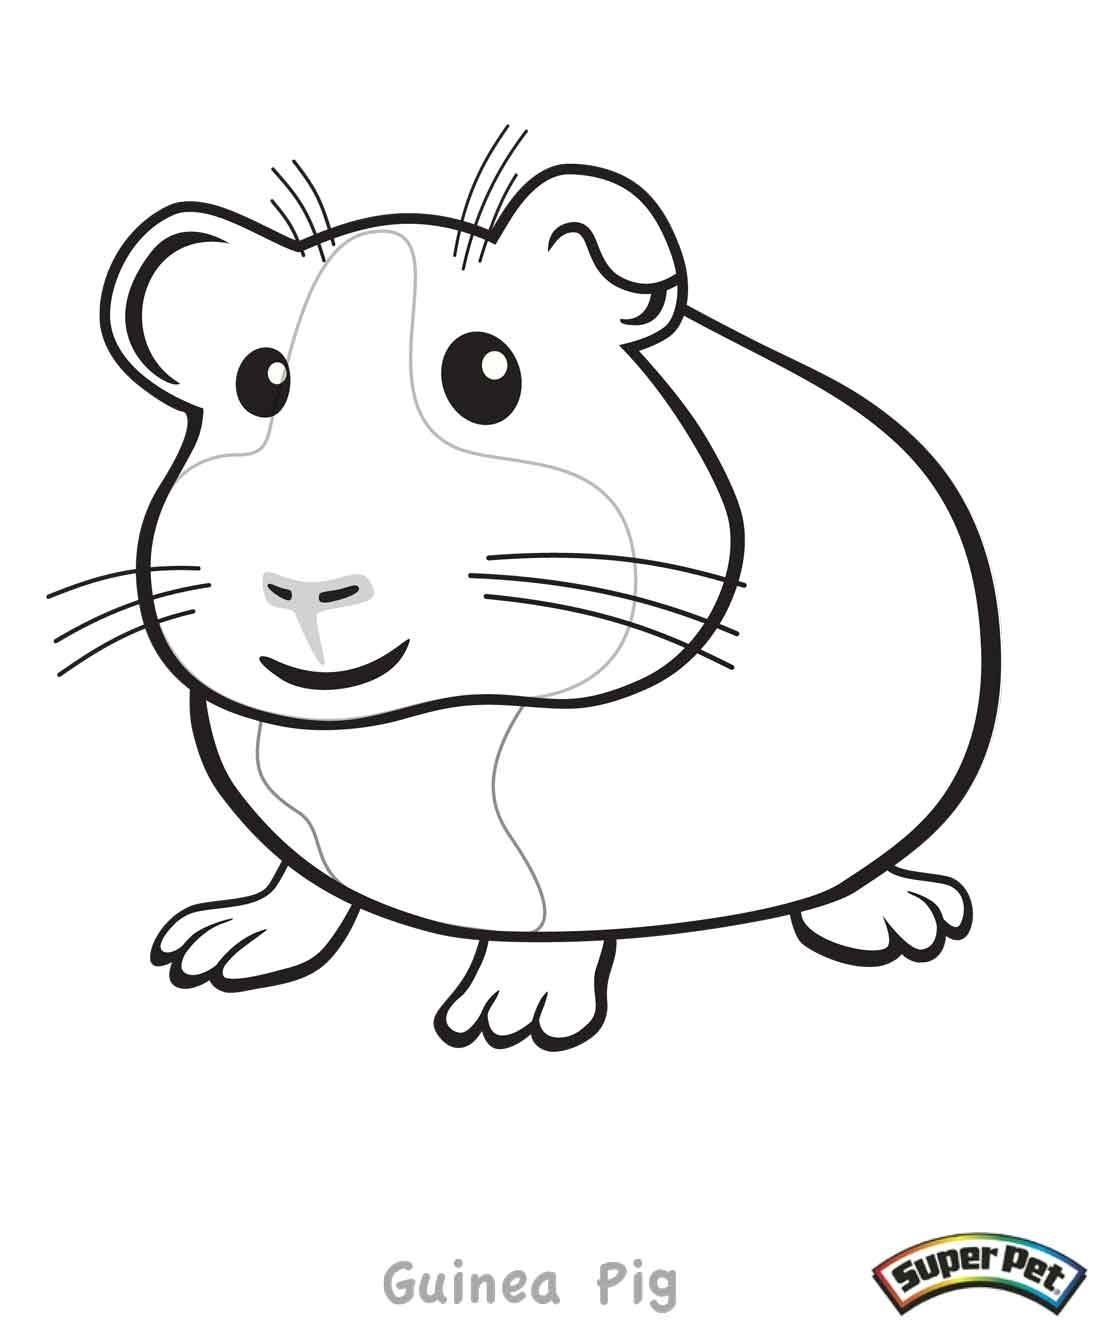 guinea pig coloring pages - guinea pig coloring pages